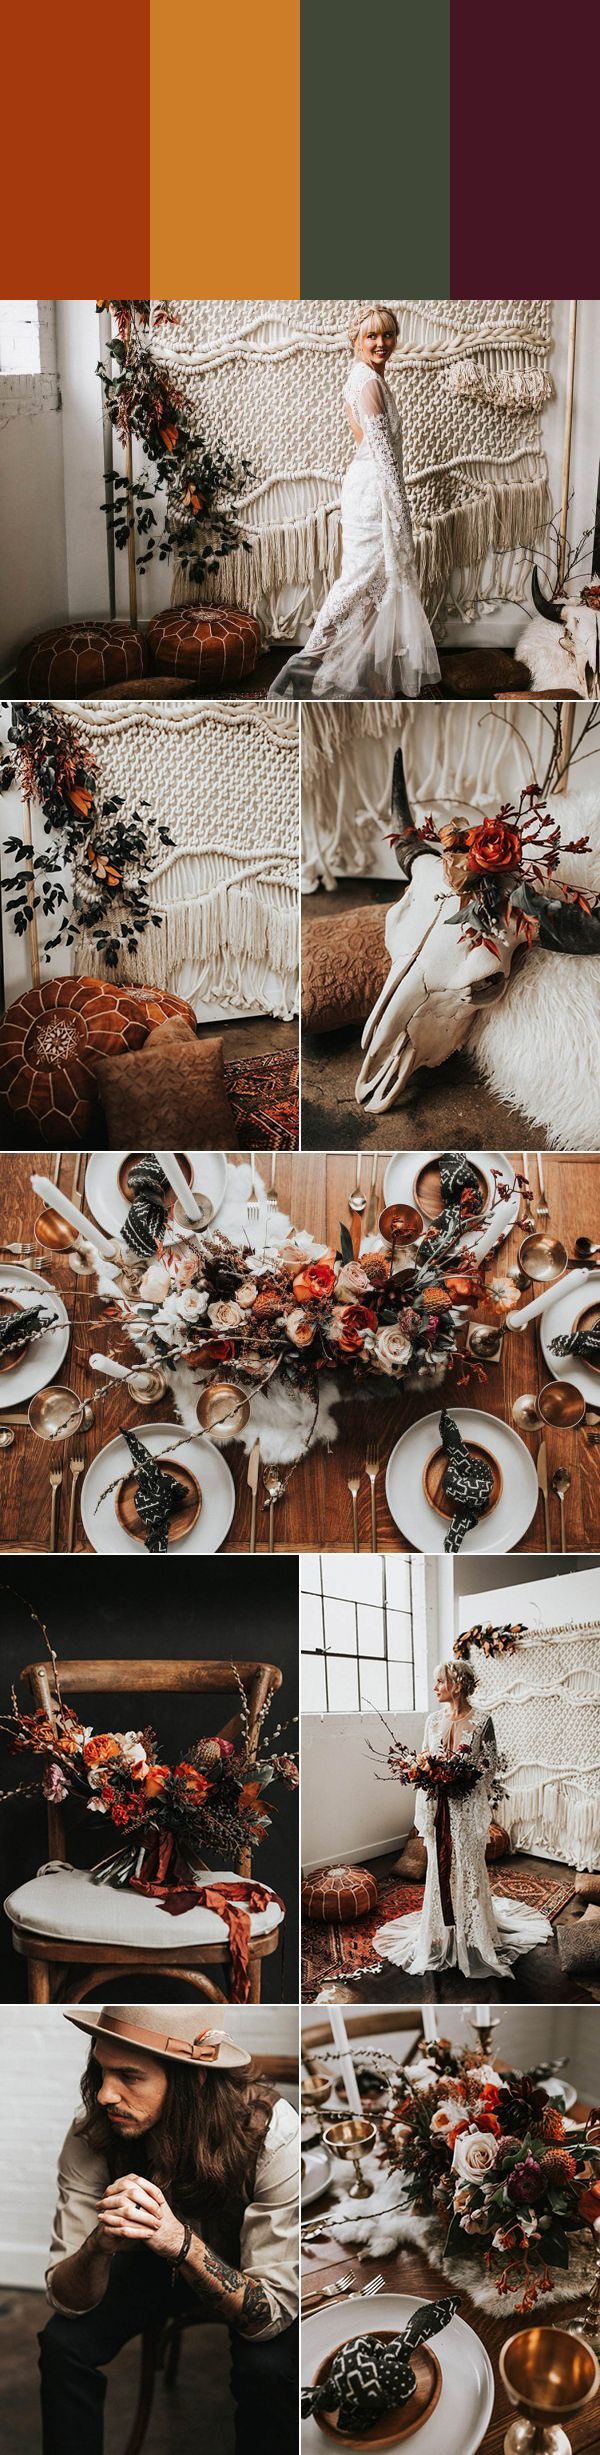 Copper, goldenrod, forest green, and aubergine | Images by Monique Serra Photography